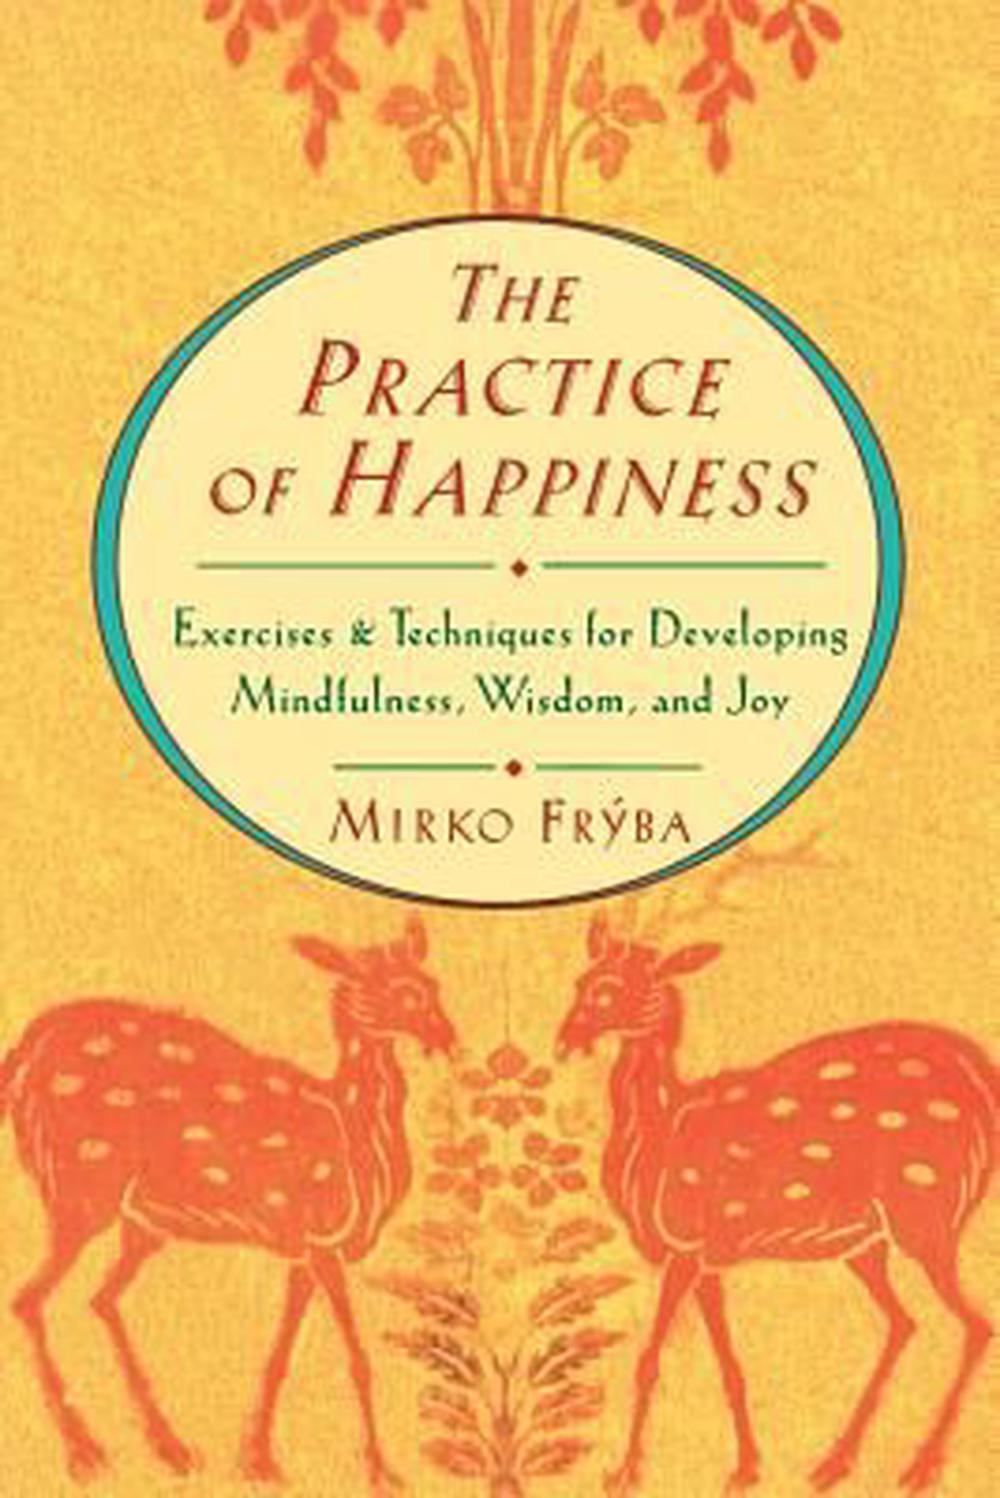 Practice of Happiness: Excercises and Techniques for Developing Mindfullness Wisdom and Joy